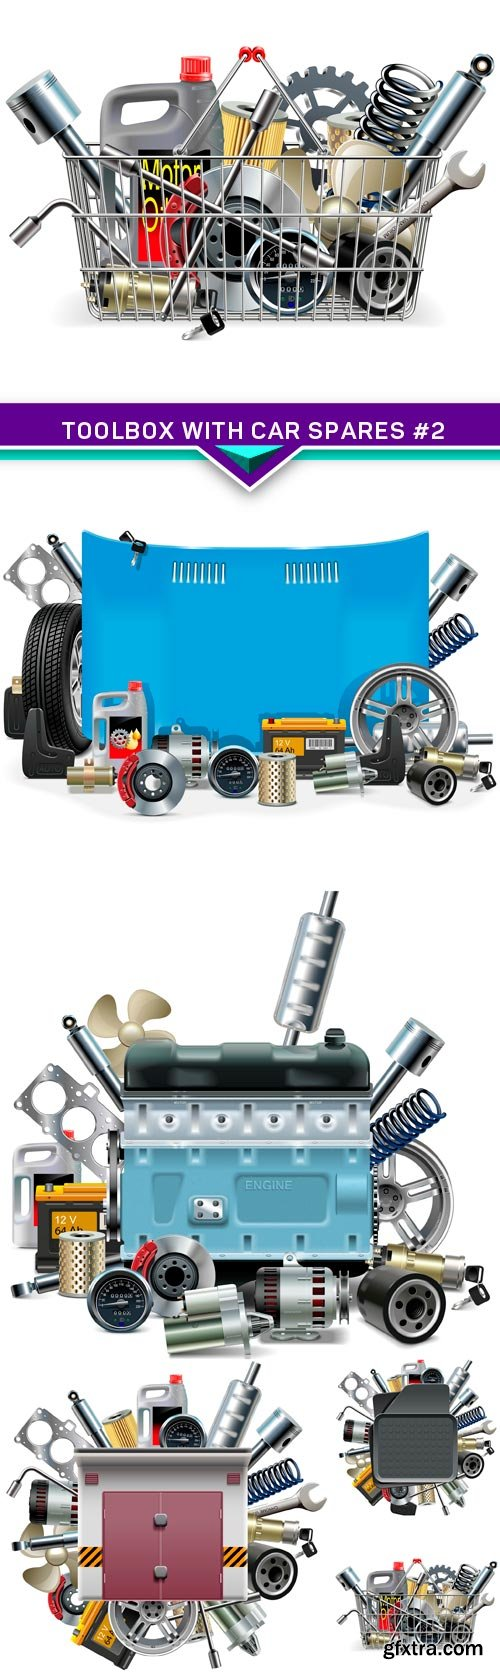 Vector Toolbox with Car Spares #2 5X EPS